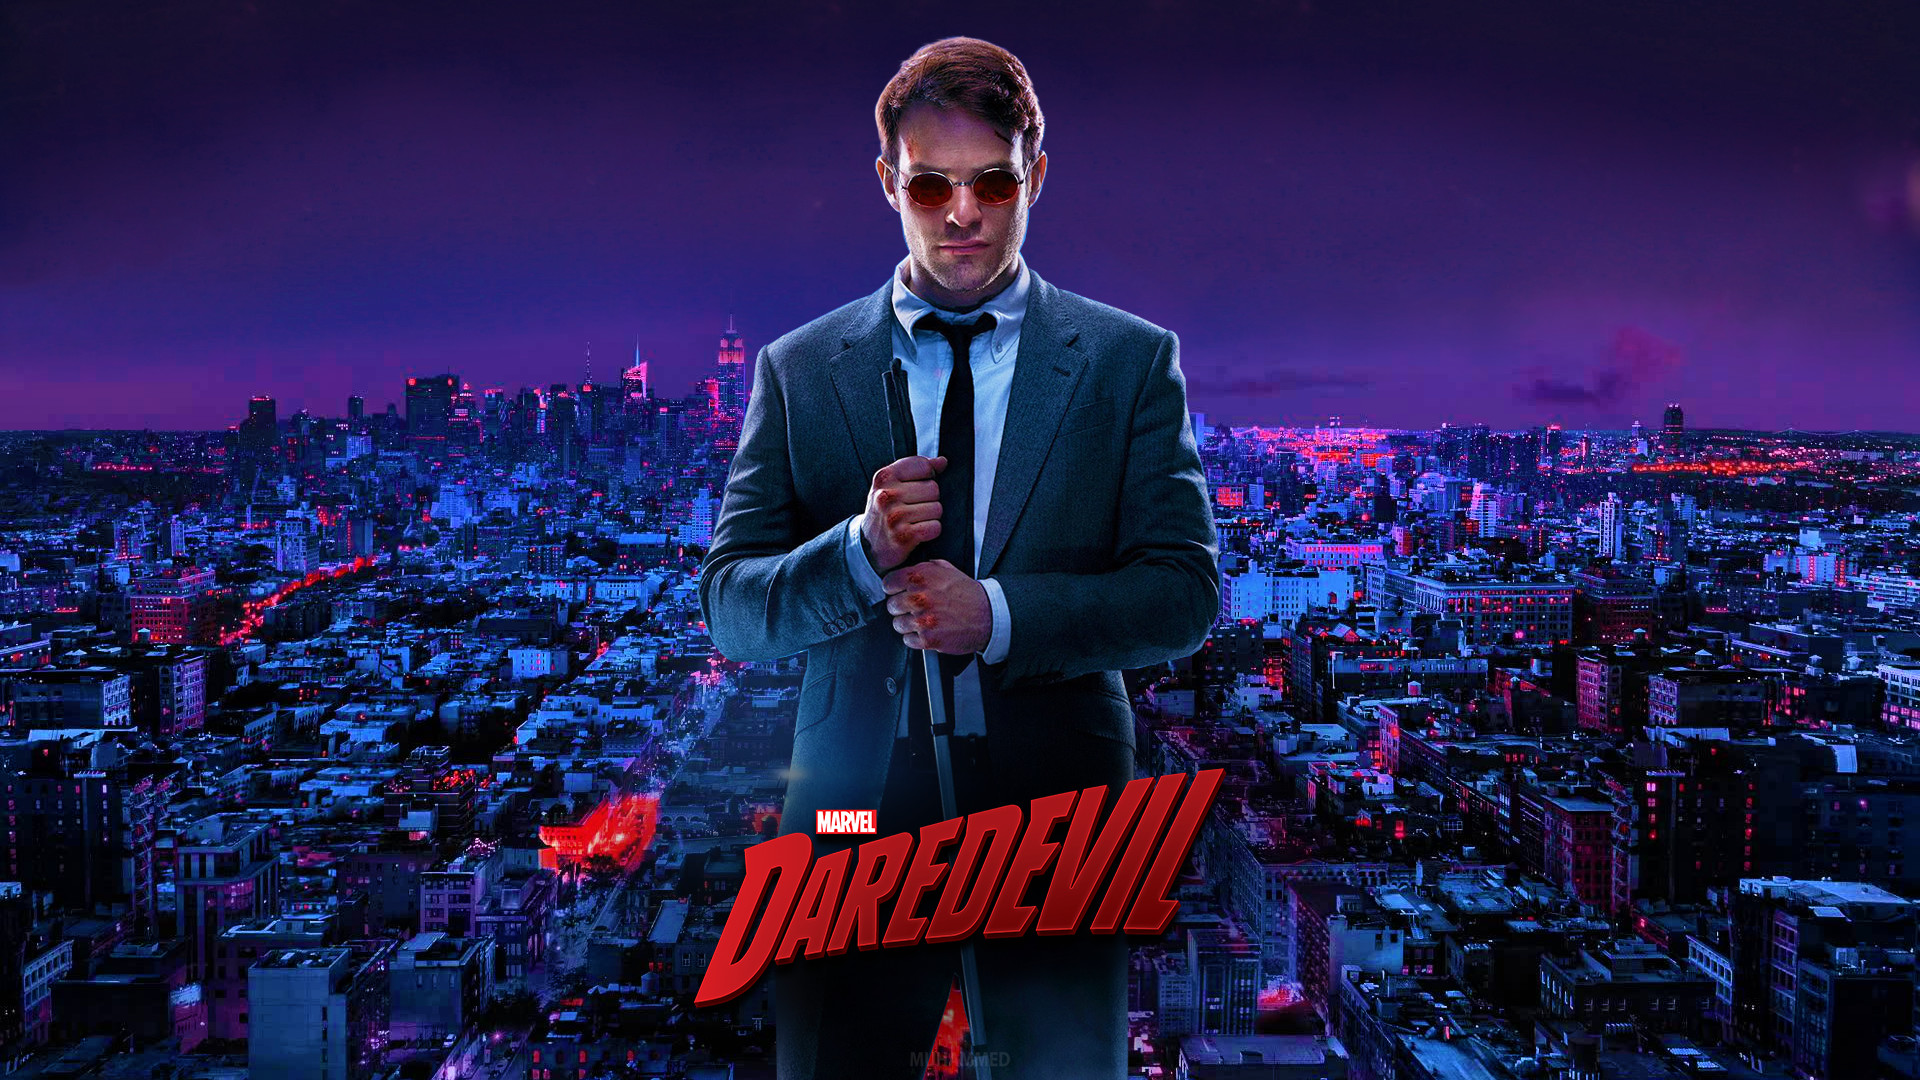 Res: 1920x1080, Daredevil Wallpaper Wide